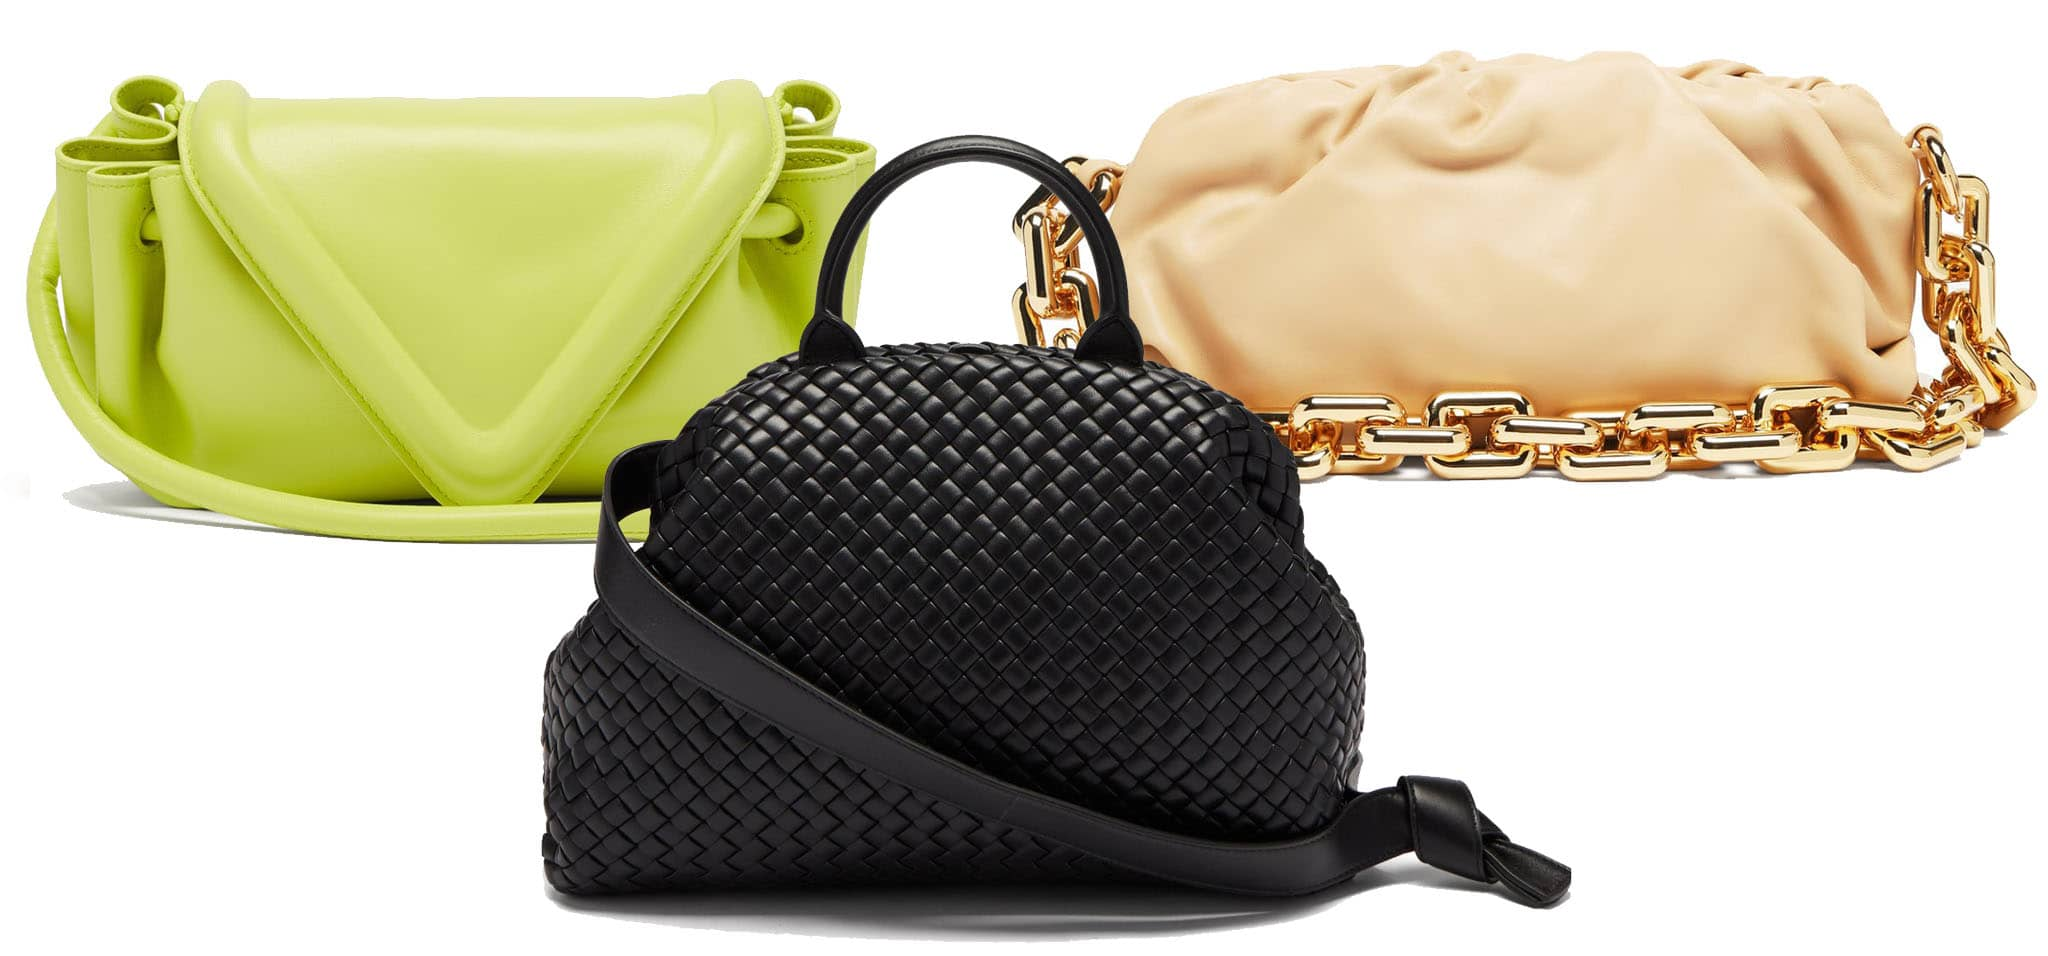 Although authentic Bottega Veneta bags come with hefty price tags, their most popular styles usually sell out fast